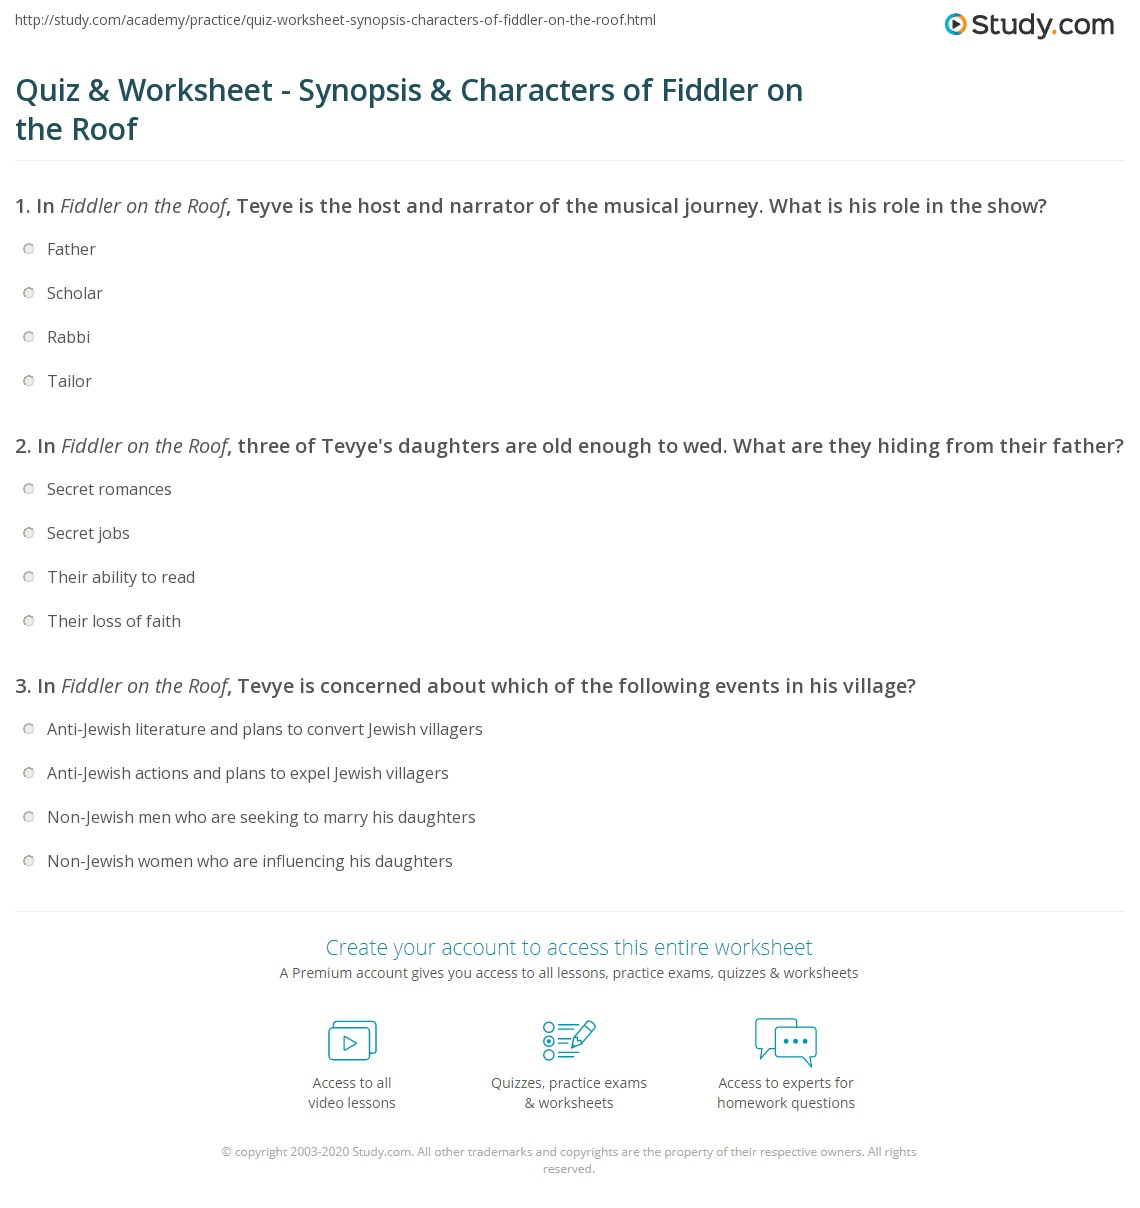 quiz worksheet synopsis characters of fiddler on the roof. Black Bedroom Furniture Sets. Home Design Ideas